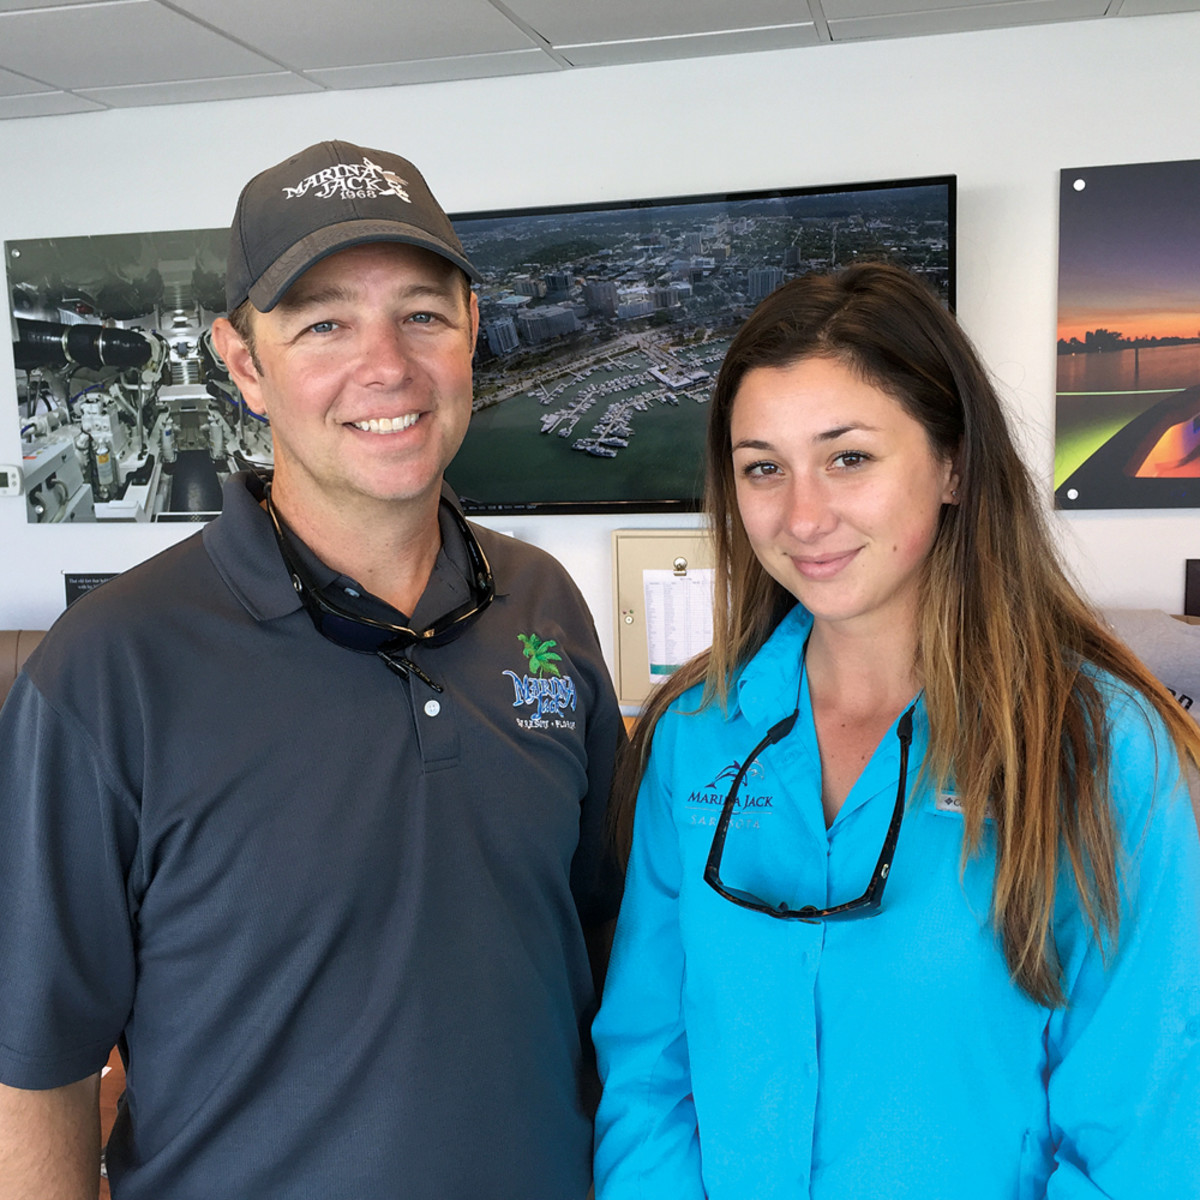 Sam Chavers Jr. is director of marina operations and dockmaster at Marina Jack and Kathryn Wilson is public communications manager and yacht services administrator.